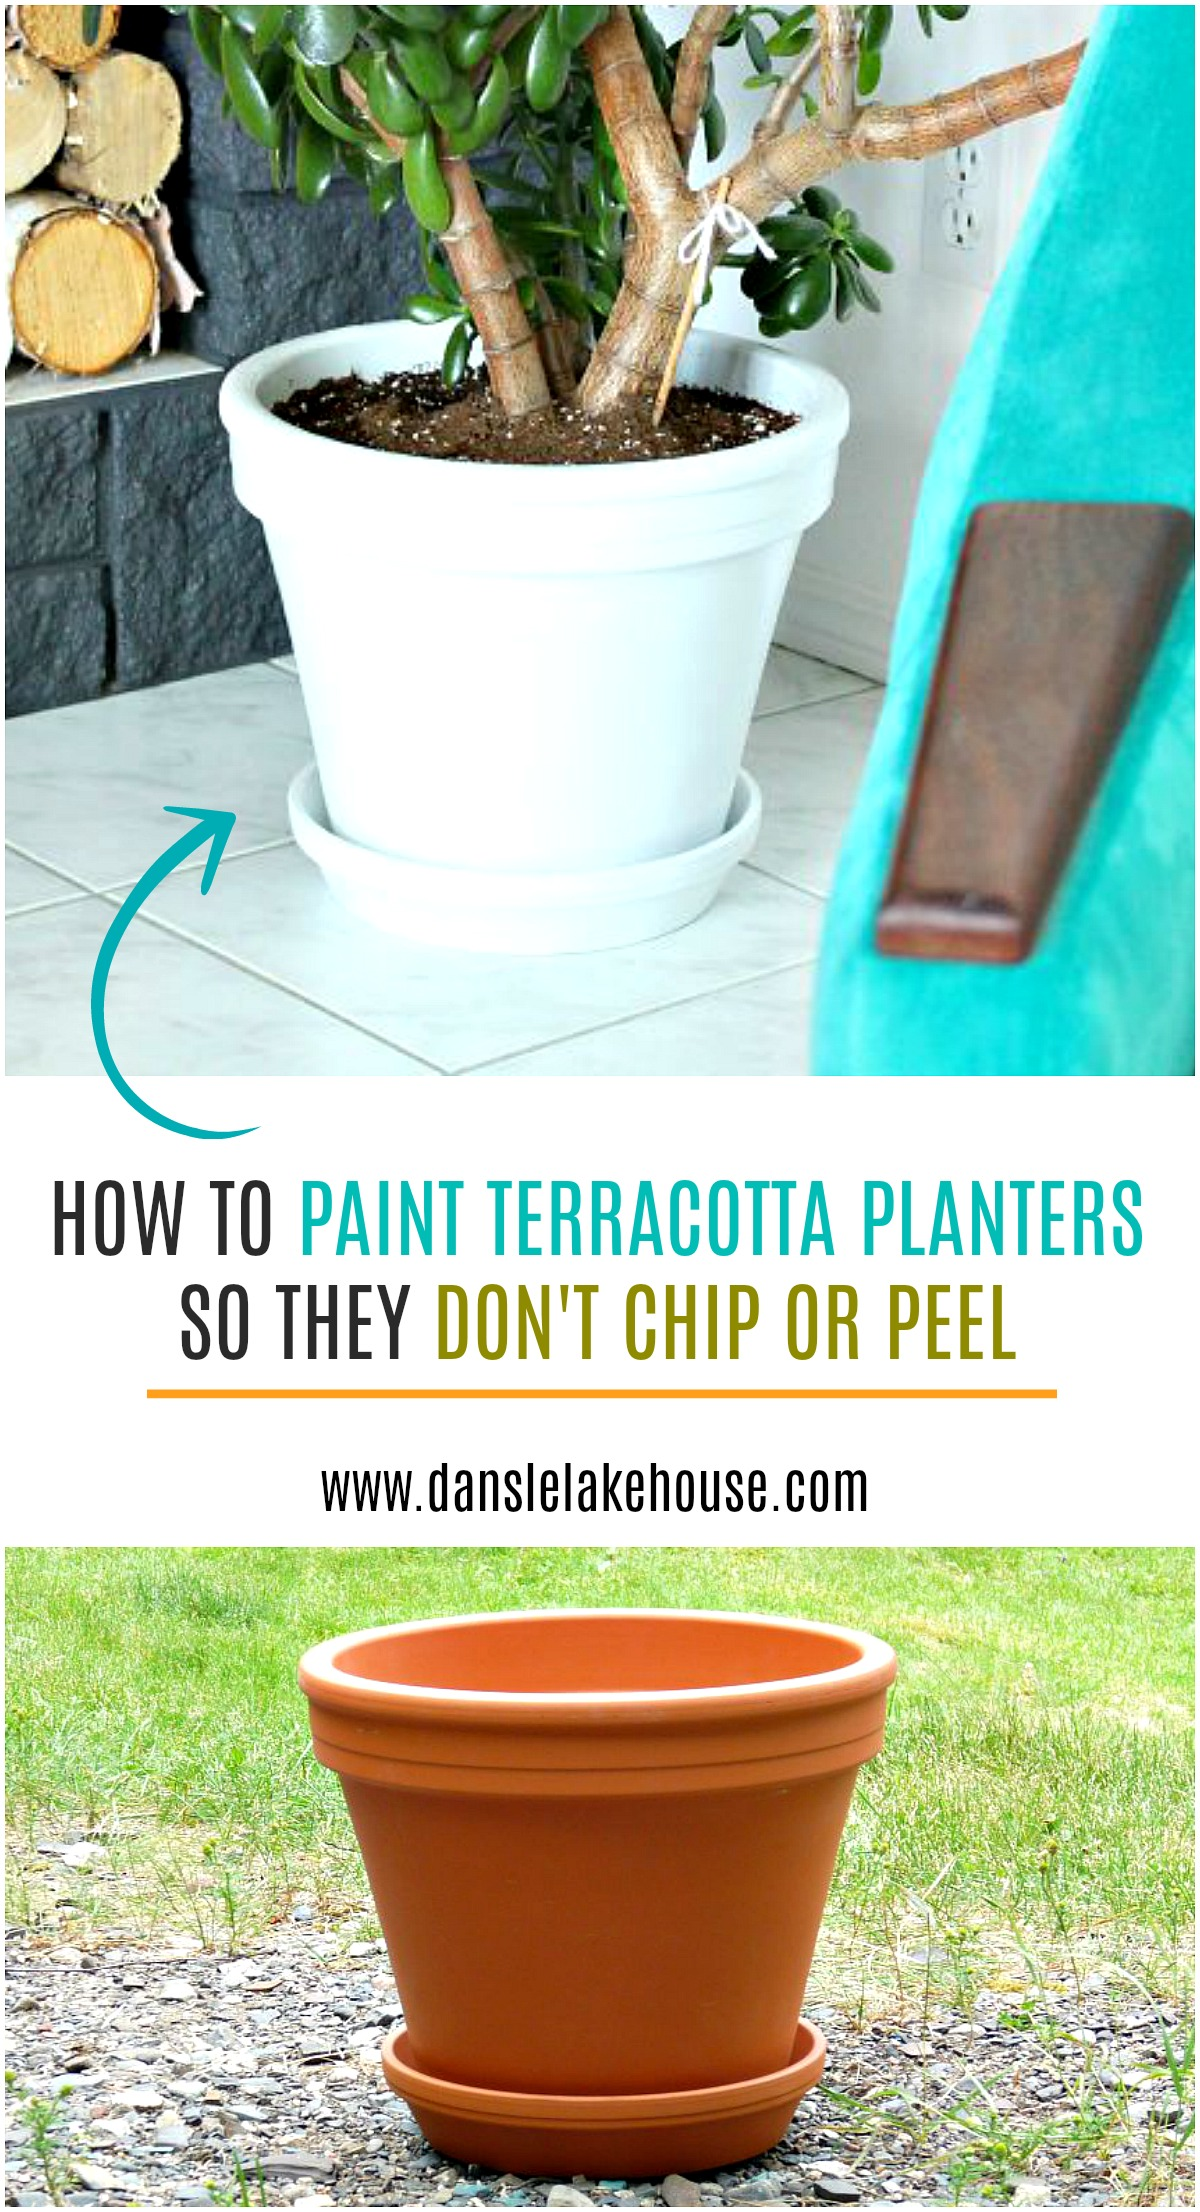 How to Paint Terracotta Planters so They Don't Chip or Peel #spraypainting #planterdiy #diy